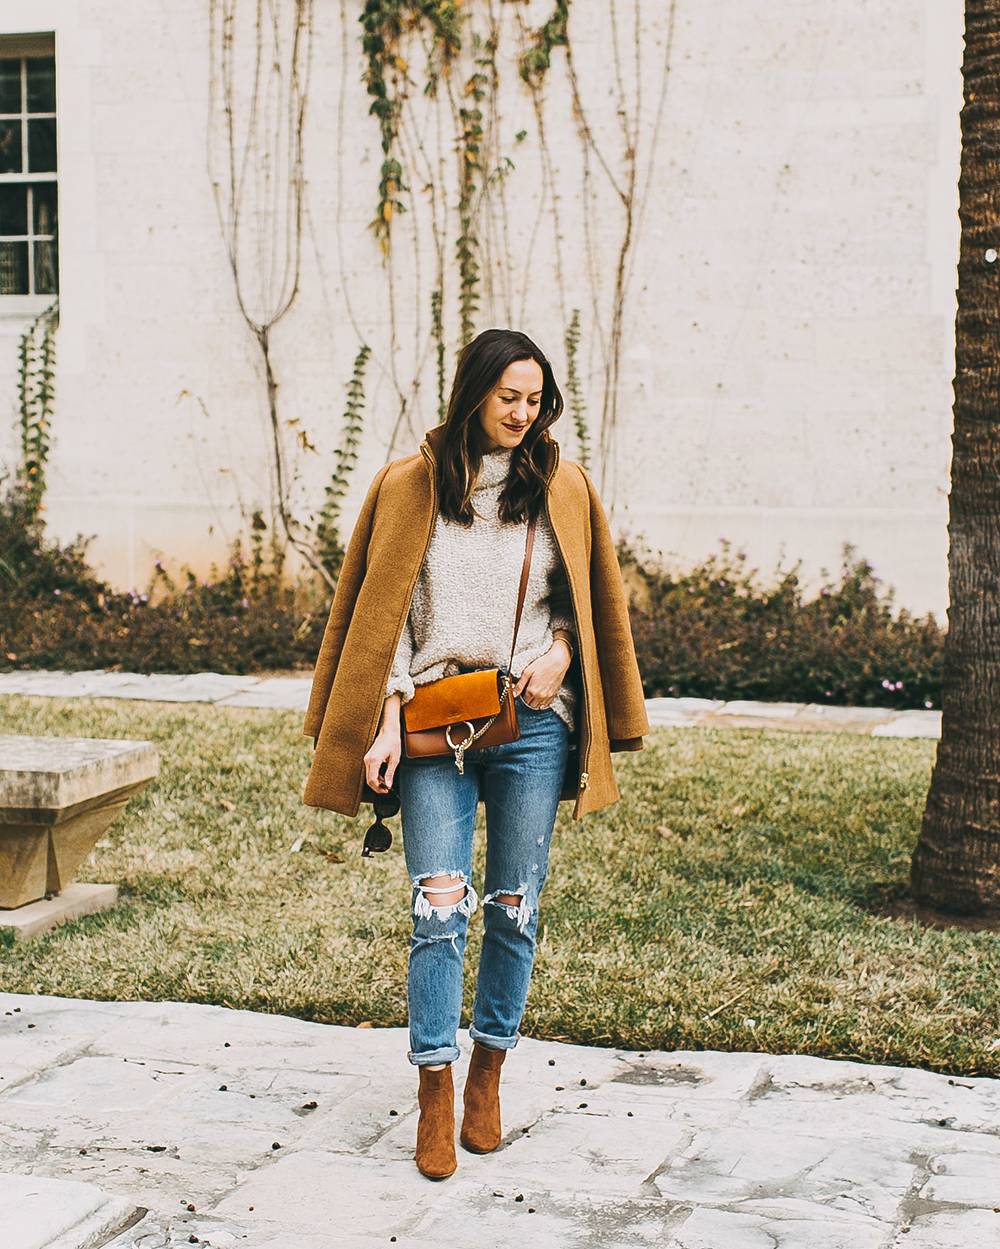 livvyland-blog-olivia-watson-austin-texas-fashion-style-blogger-free-people-oatmeal-knit-sweater-j-crew-camel-coat-chloe-faye-tobacco-handbag-6